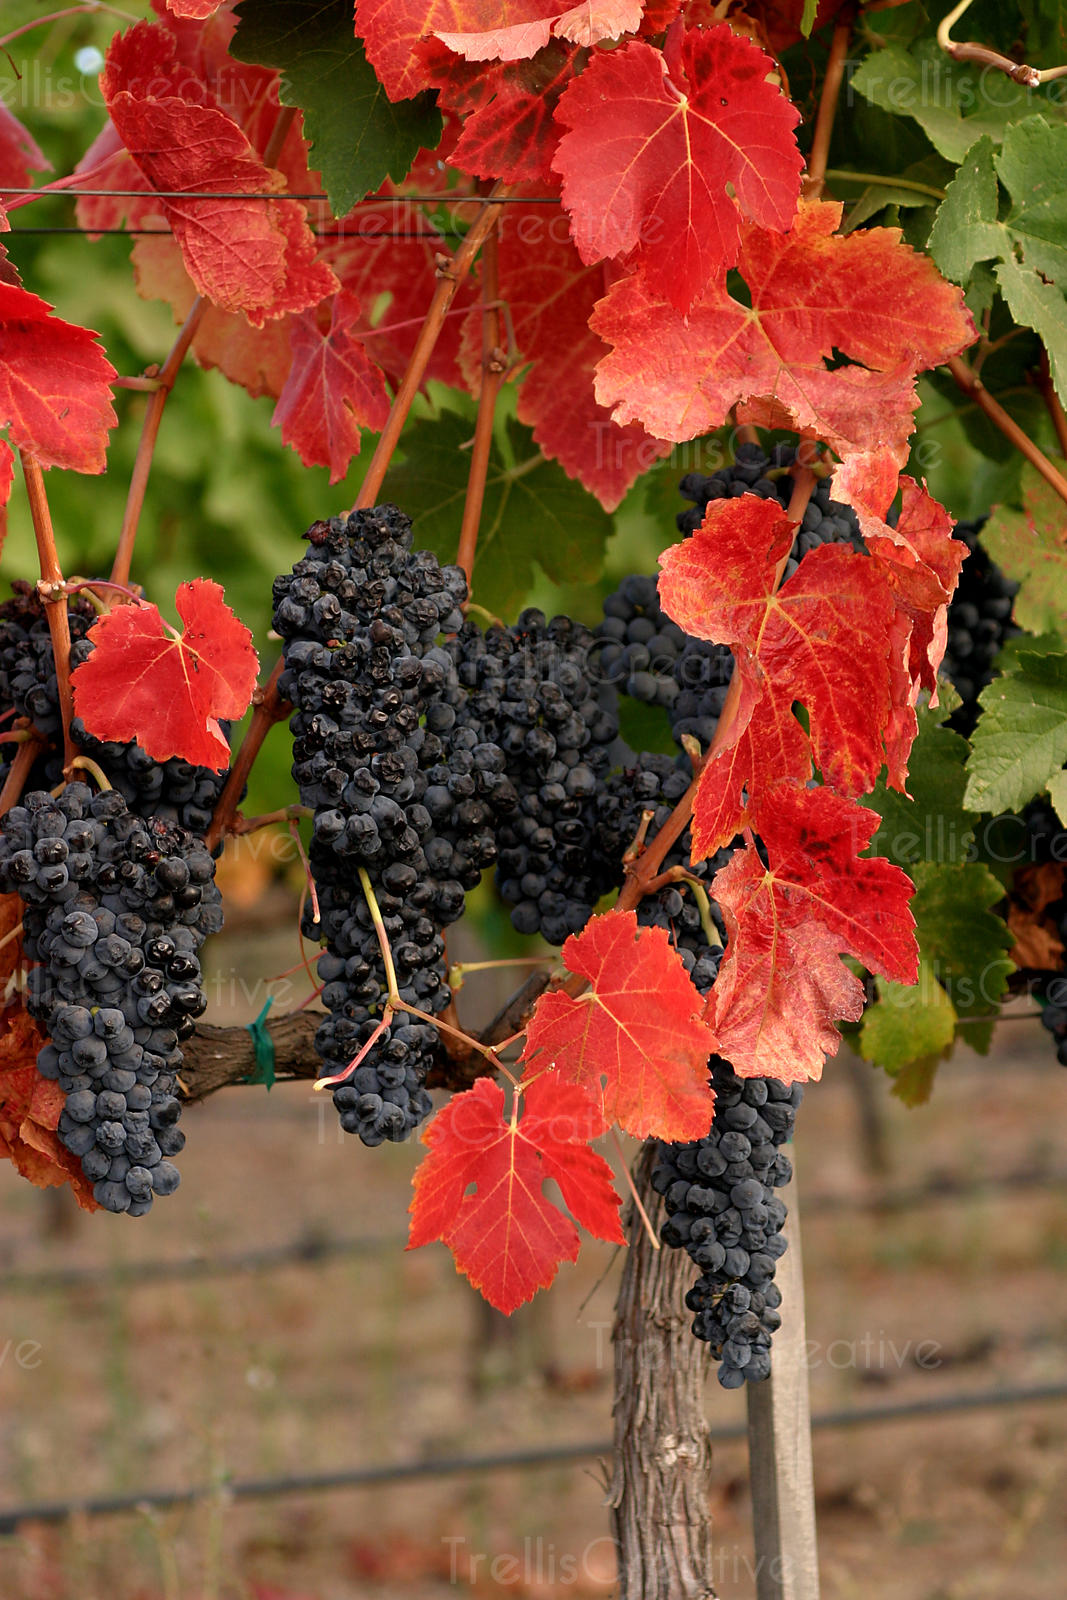 Pierce's disease turns merlot vineyard canopy leaves red